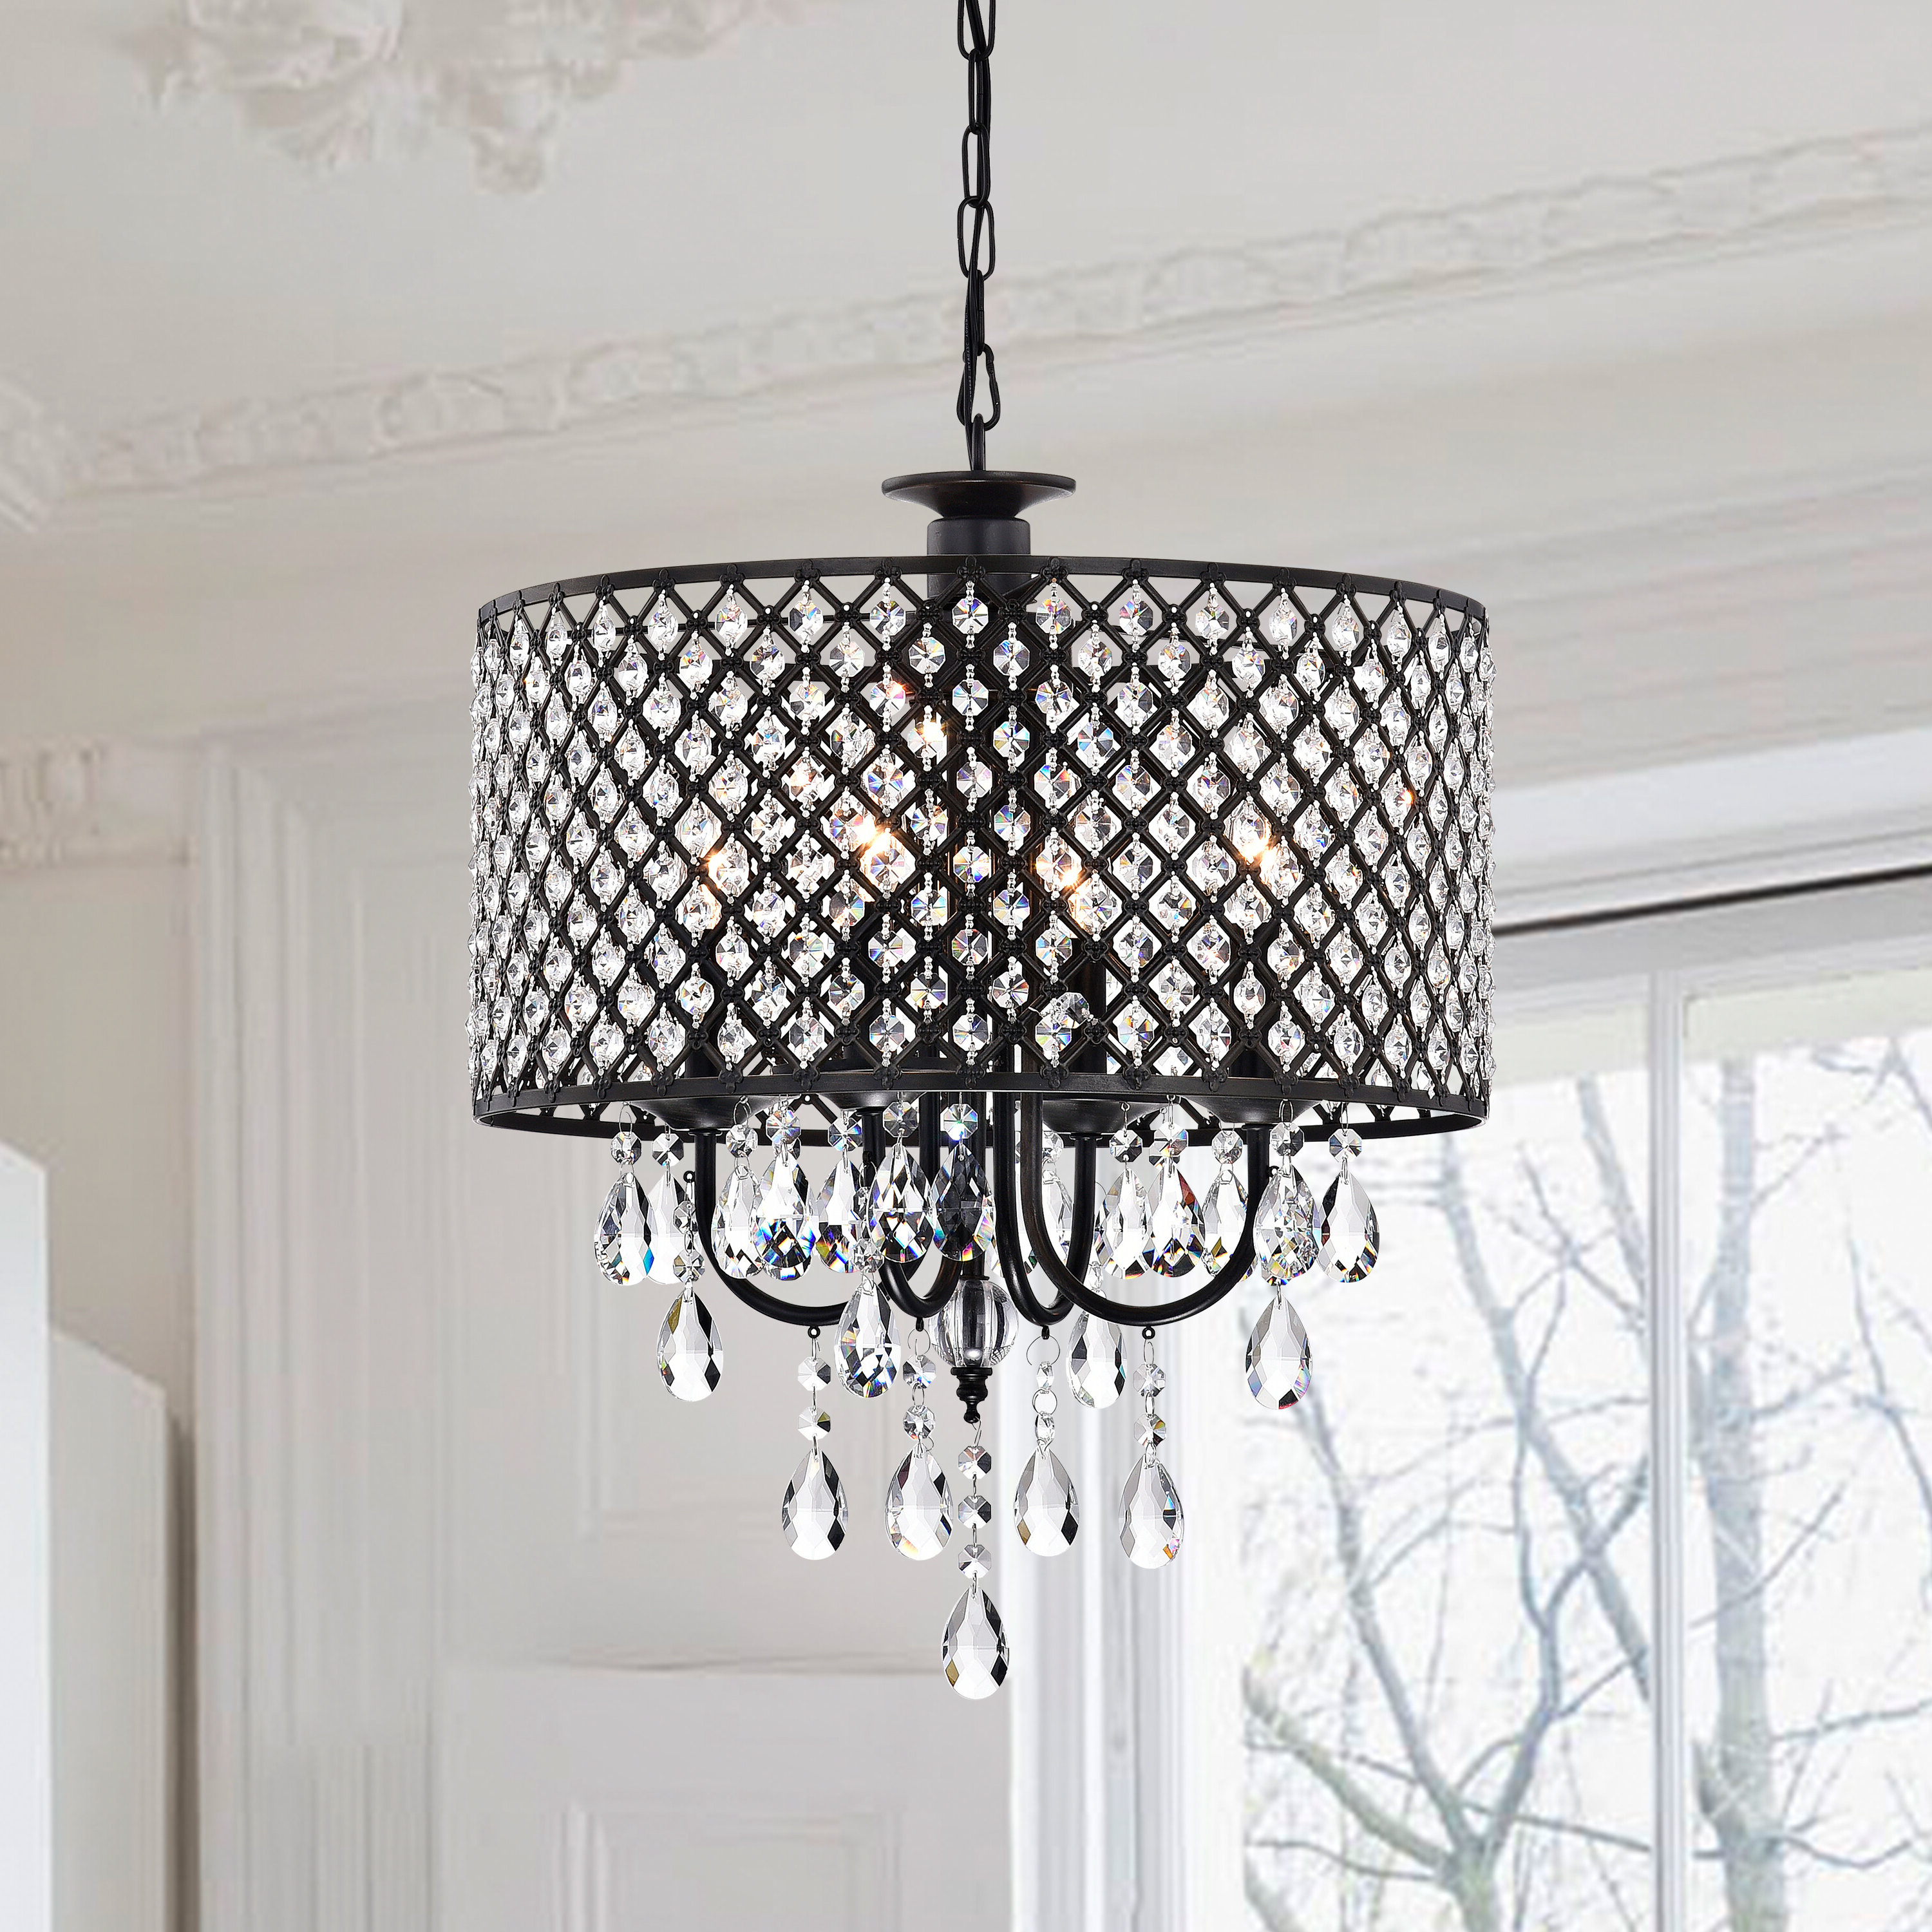 Widely Used Sinead 4 Light Chandeliers Inside Gisselle 4 Light Drum Chandelier (View 6 of 25)